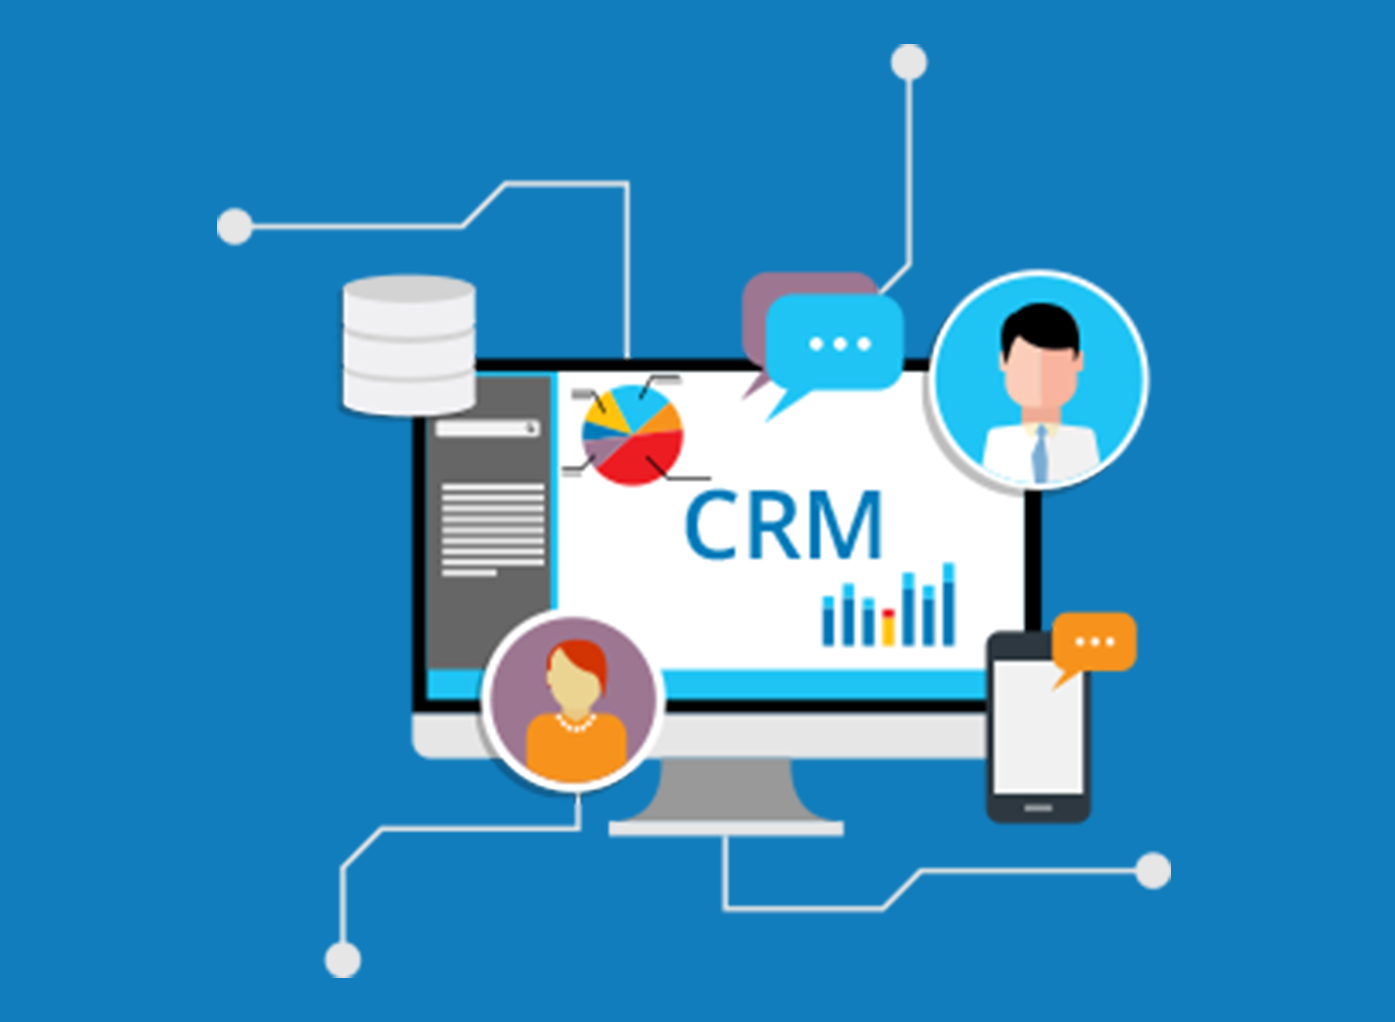 Case Study Overview: Implementing a CRM solution to enable a single view of customers and drive customer satisfaction and loyalty for a bank